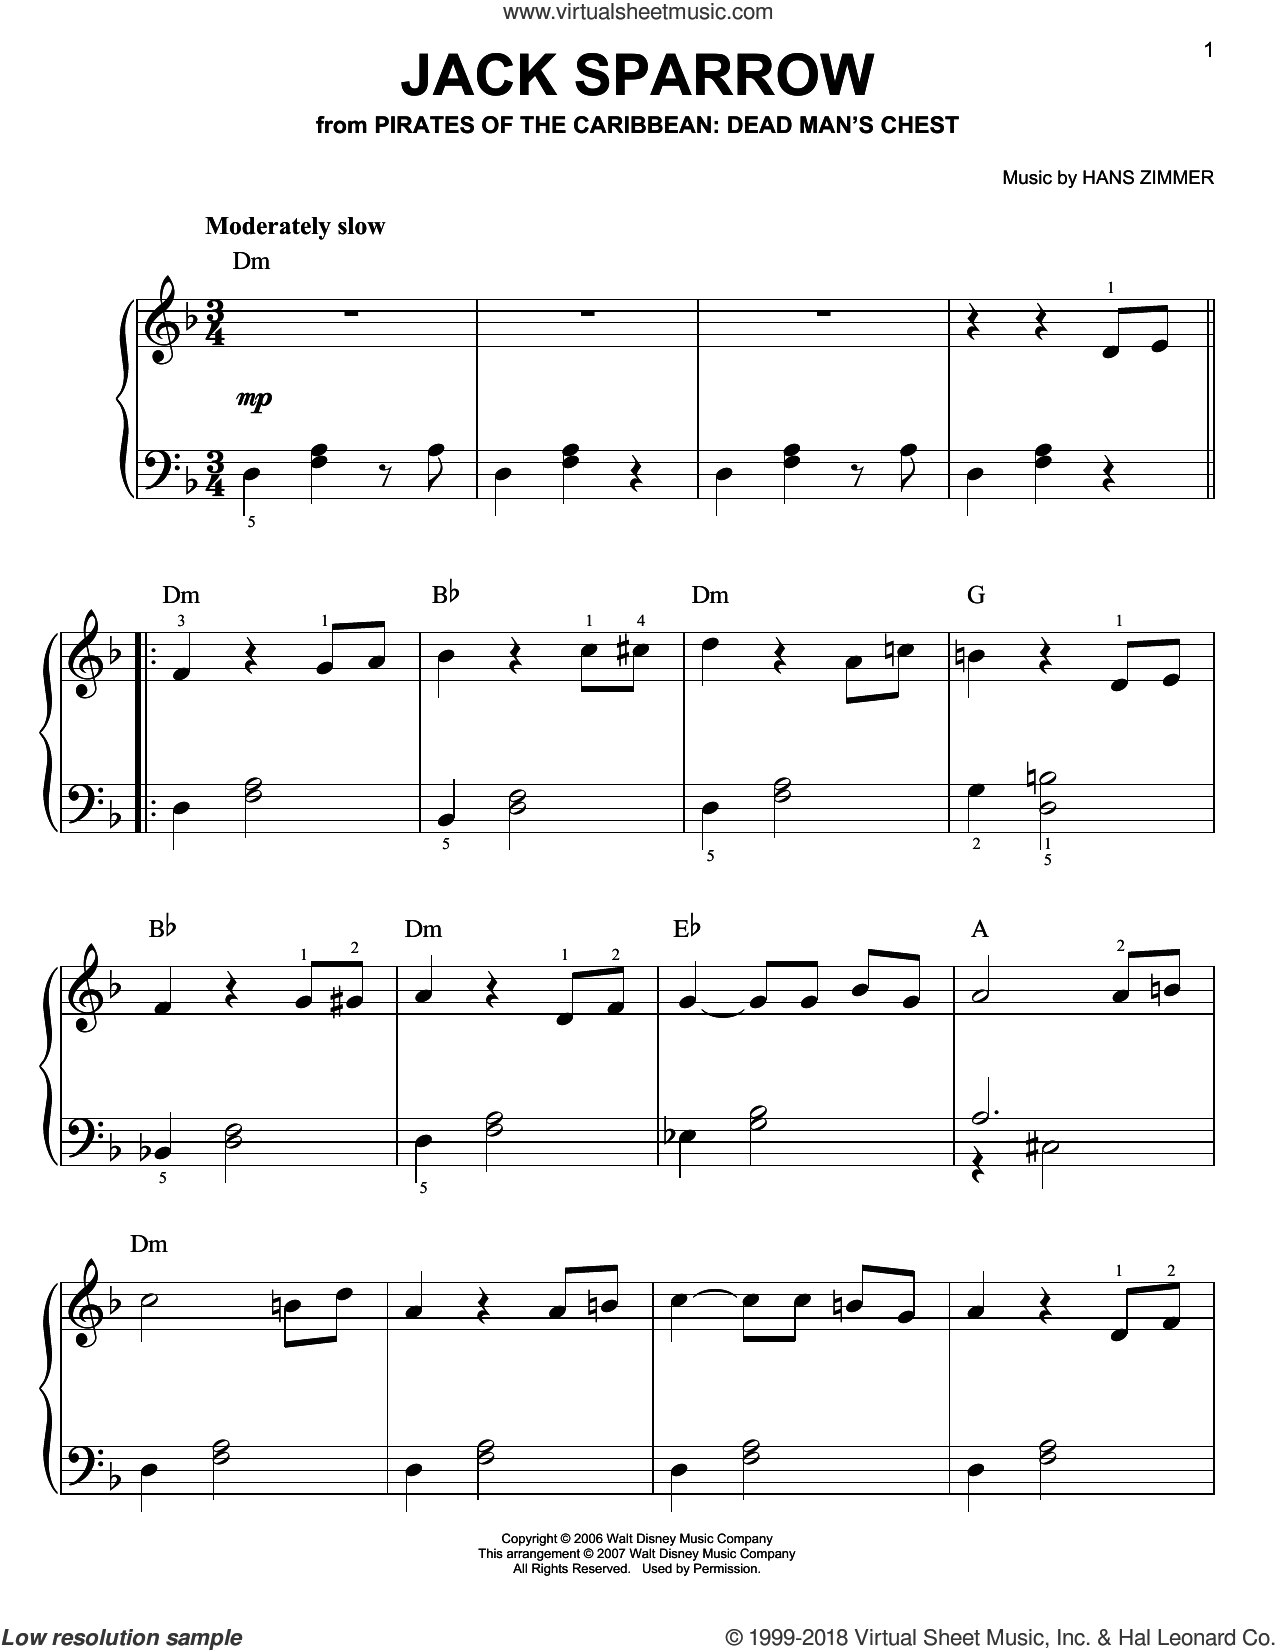 Jack Sparrow (from Pirates Of The Caribbean: Dead Man's Chest) sheet music for piano solo by Hans Zimmer, easy skill level